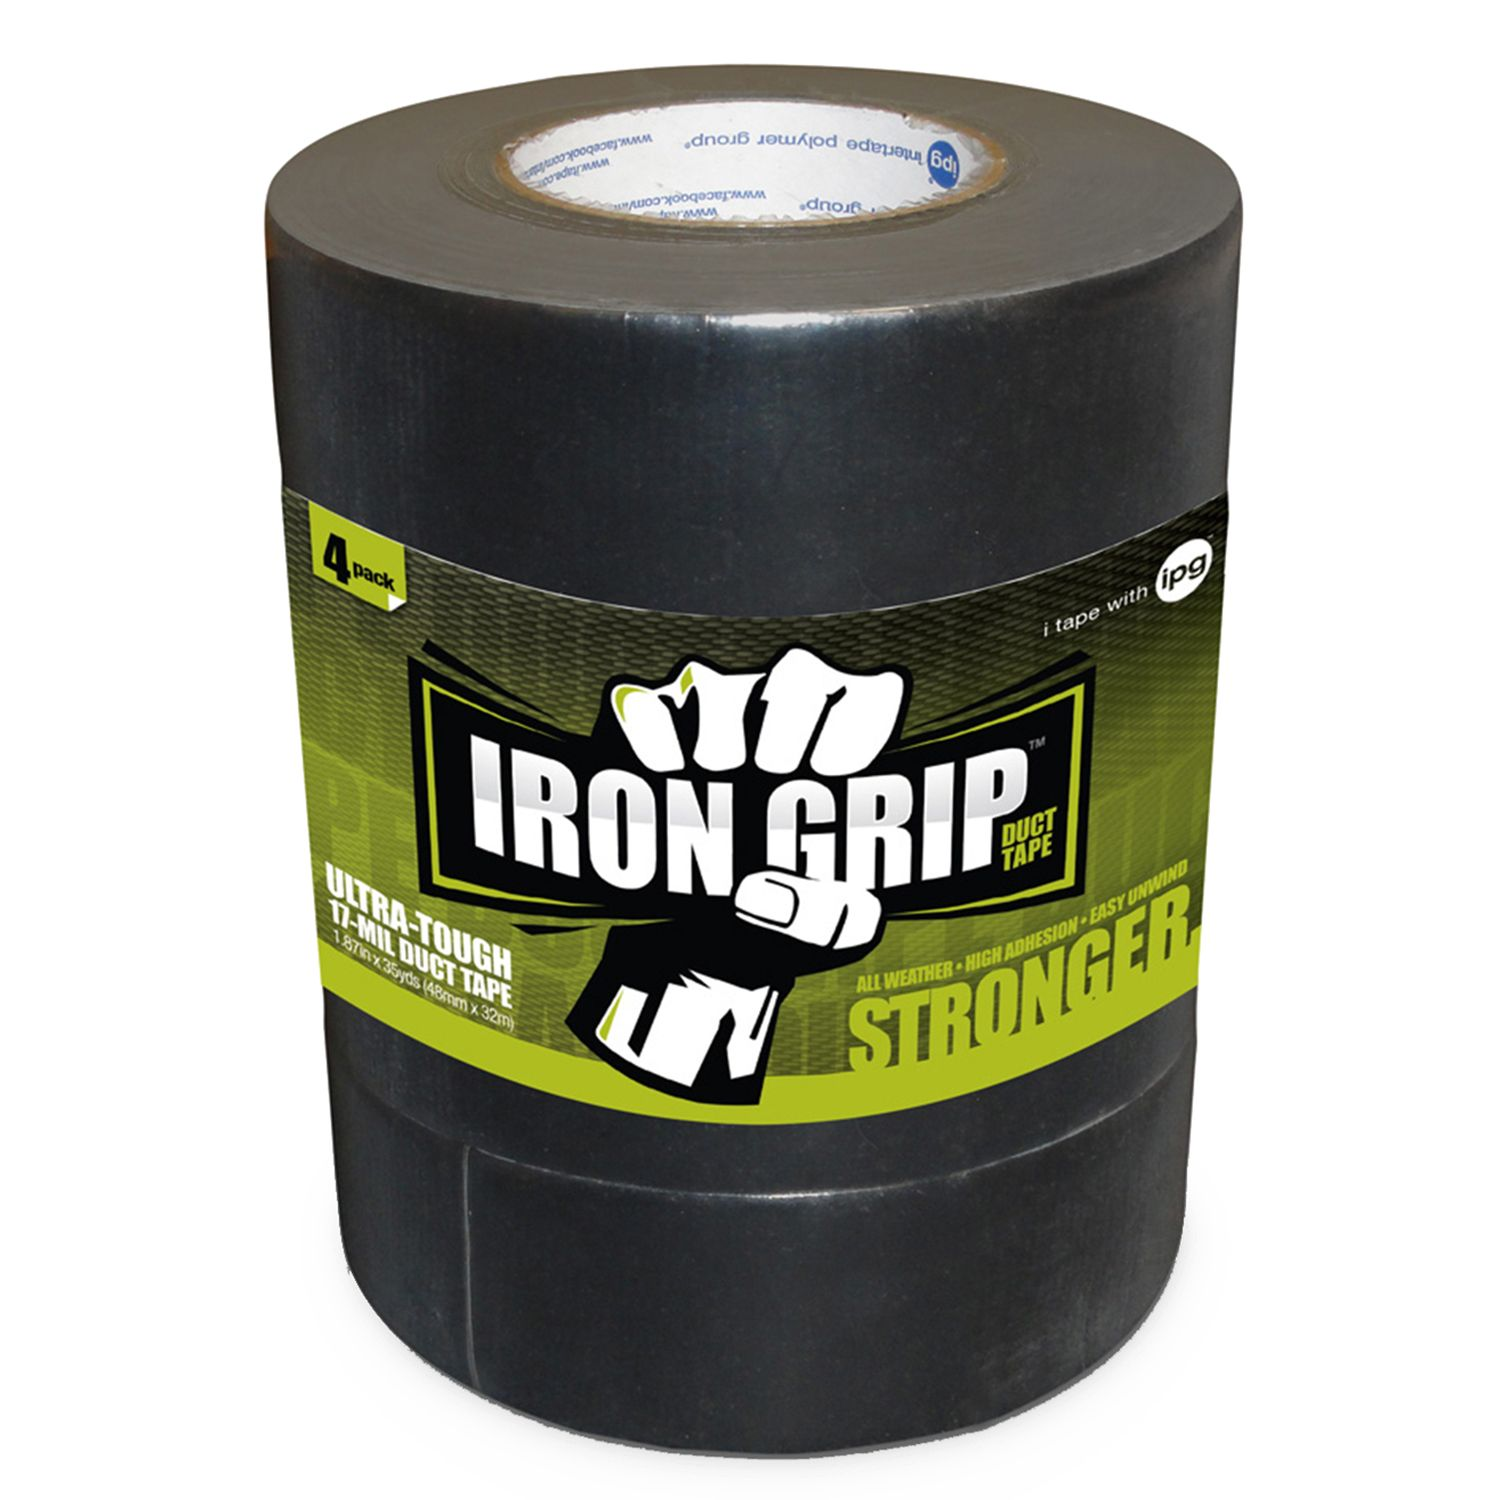 Iron Grip Duct Tape, Black, 4 Pk